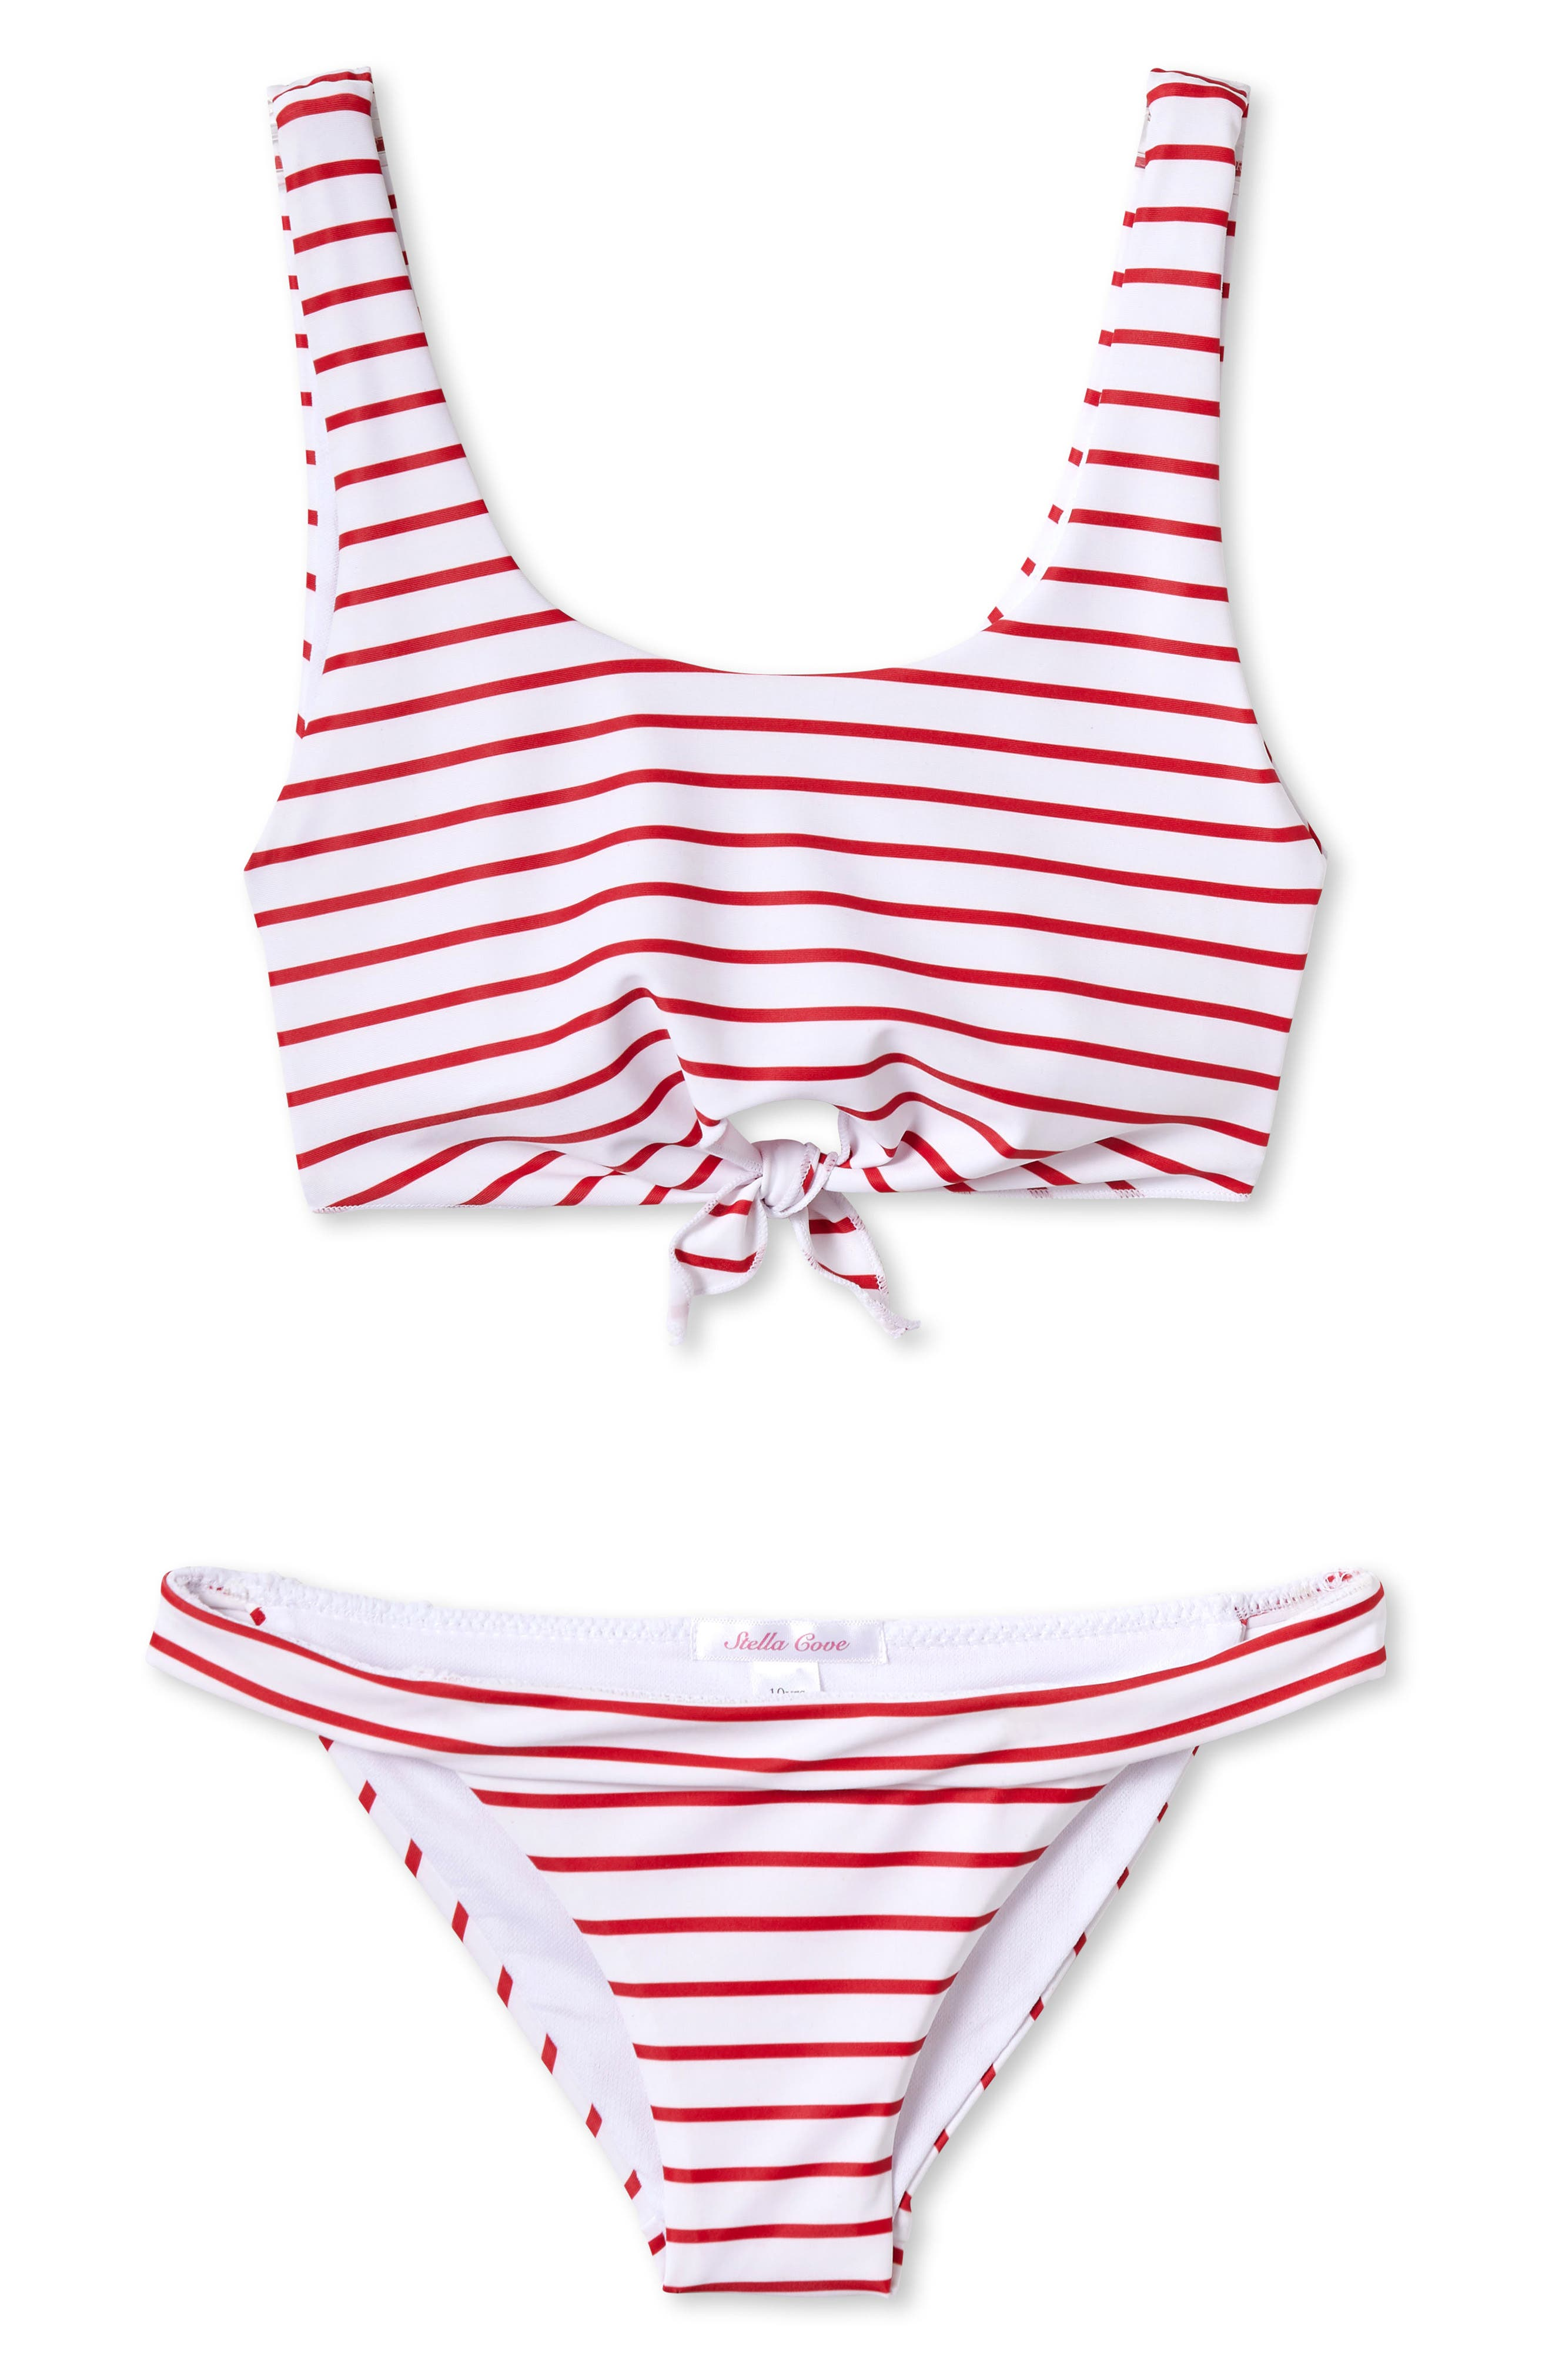 STELLA COVE, Stripe Two-Piece Swimsuit, Main thumbnail 1, color, RED